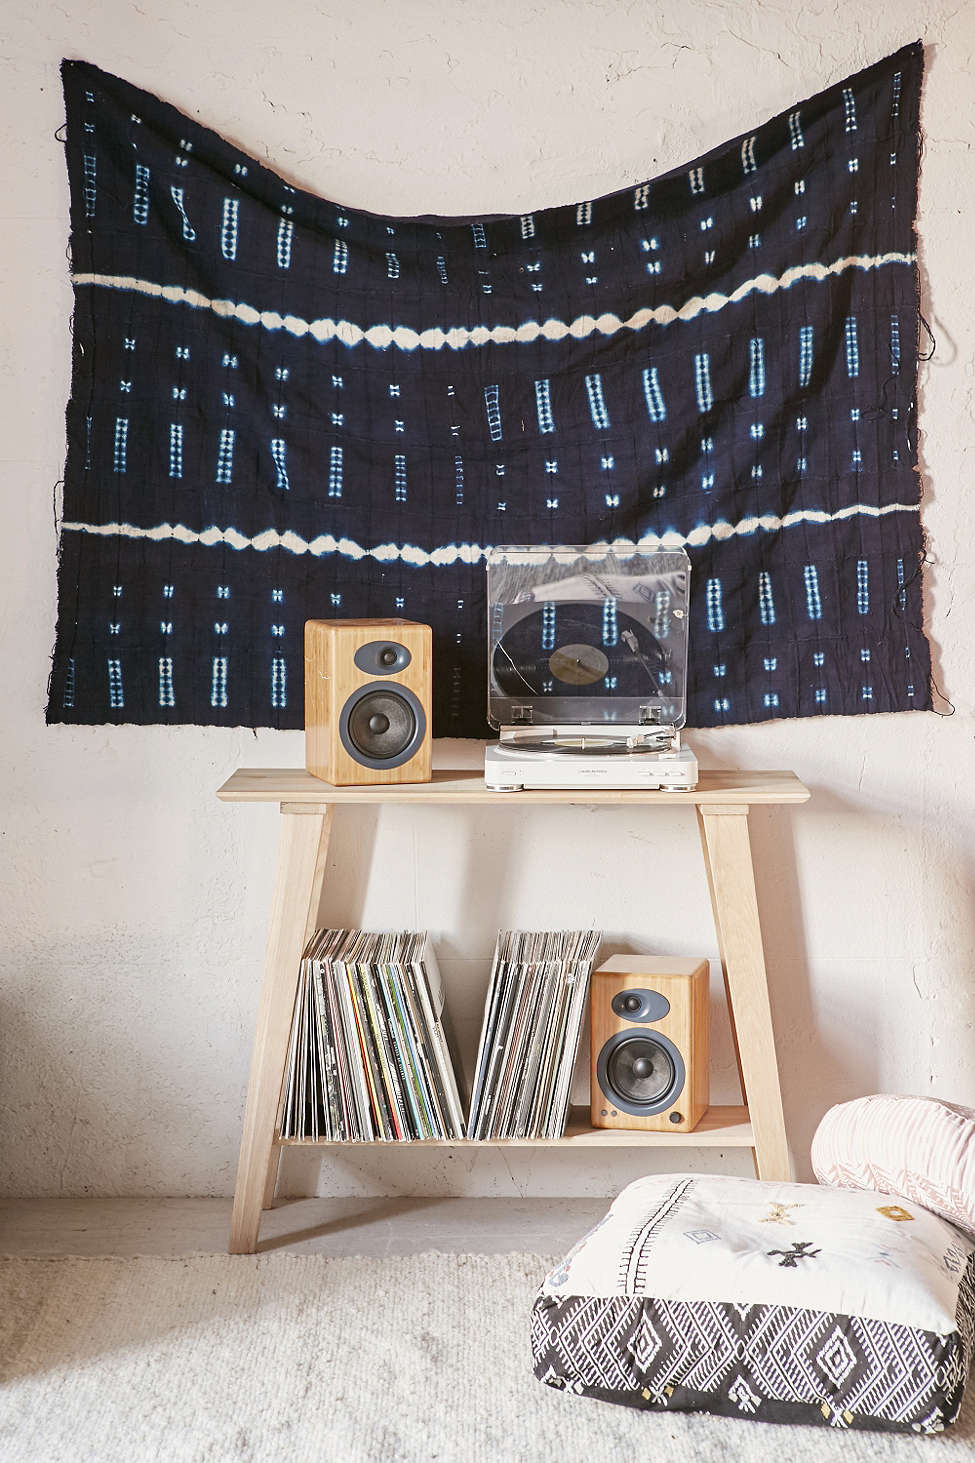 Crédit: Urban Outfitters